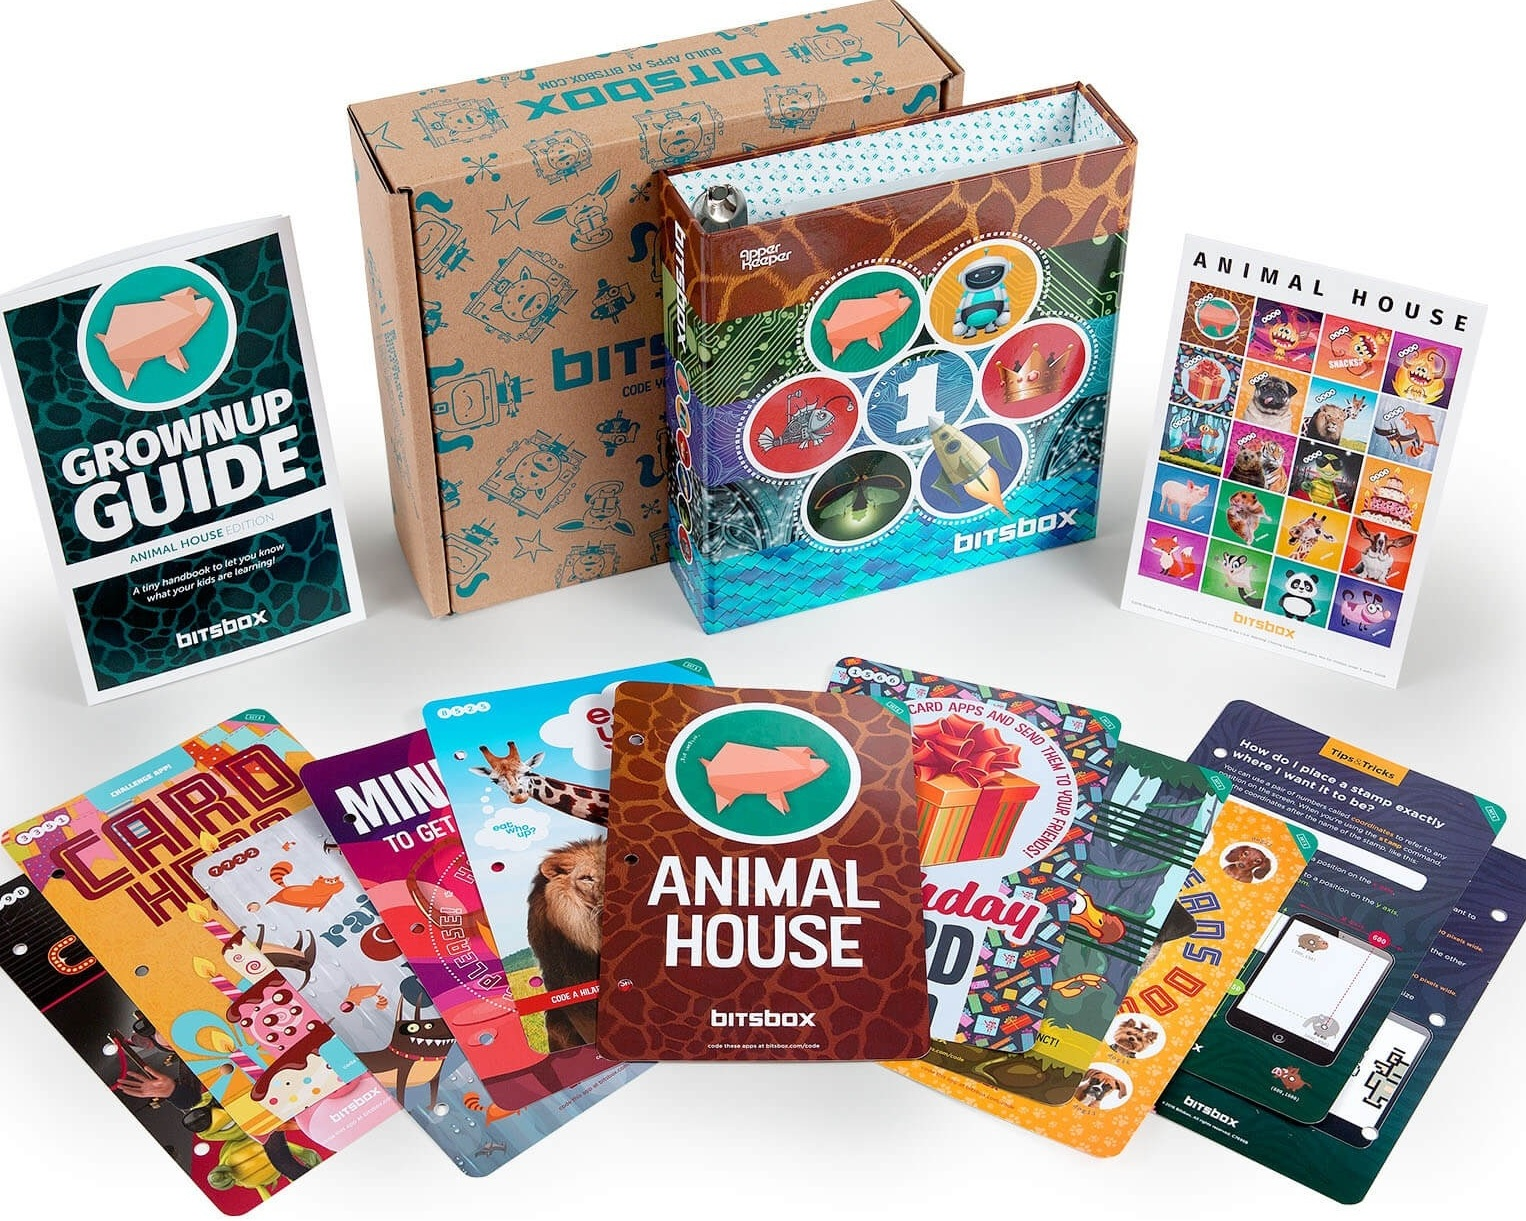 Bitsbox - Bitsbox uses fun, colorful kits to get kids excited about learning to code. They donated kits to our kids so they can learn about coding logic and eventually be competitive in a global market.